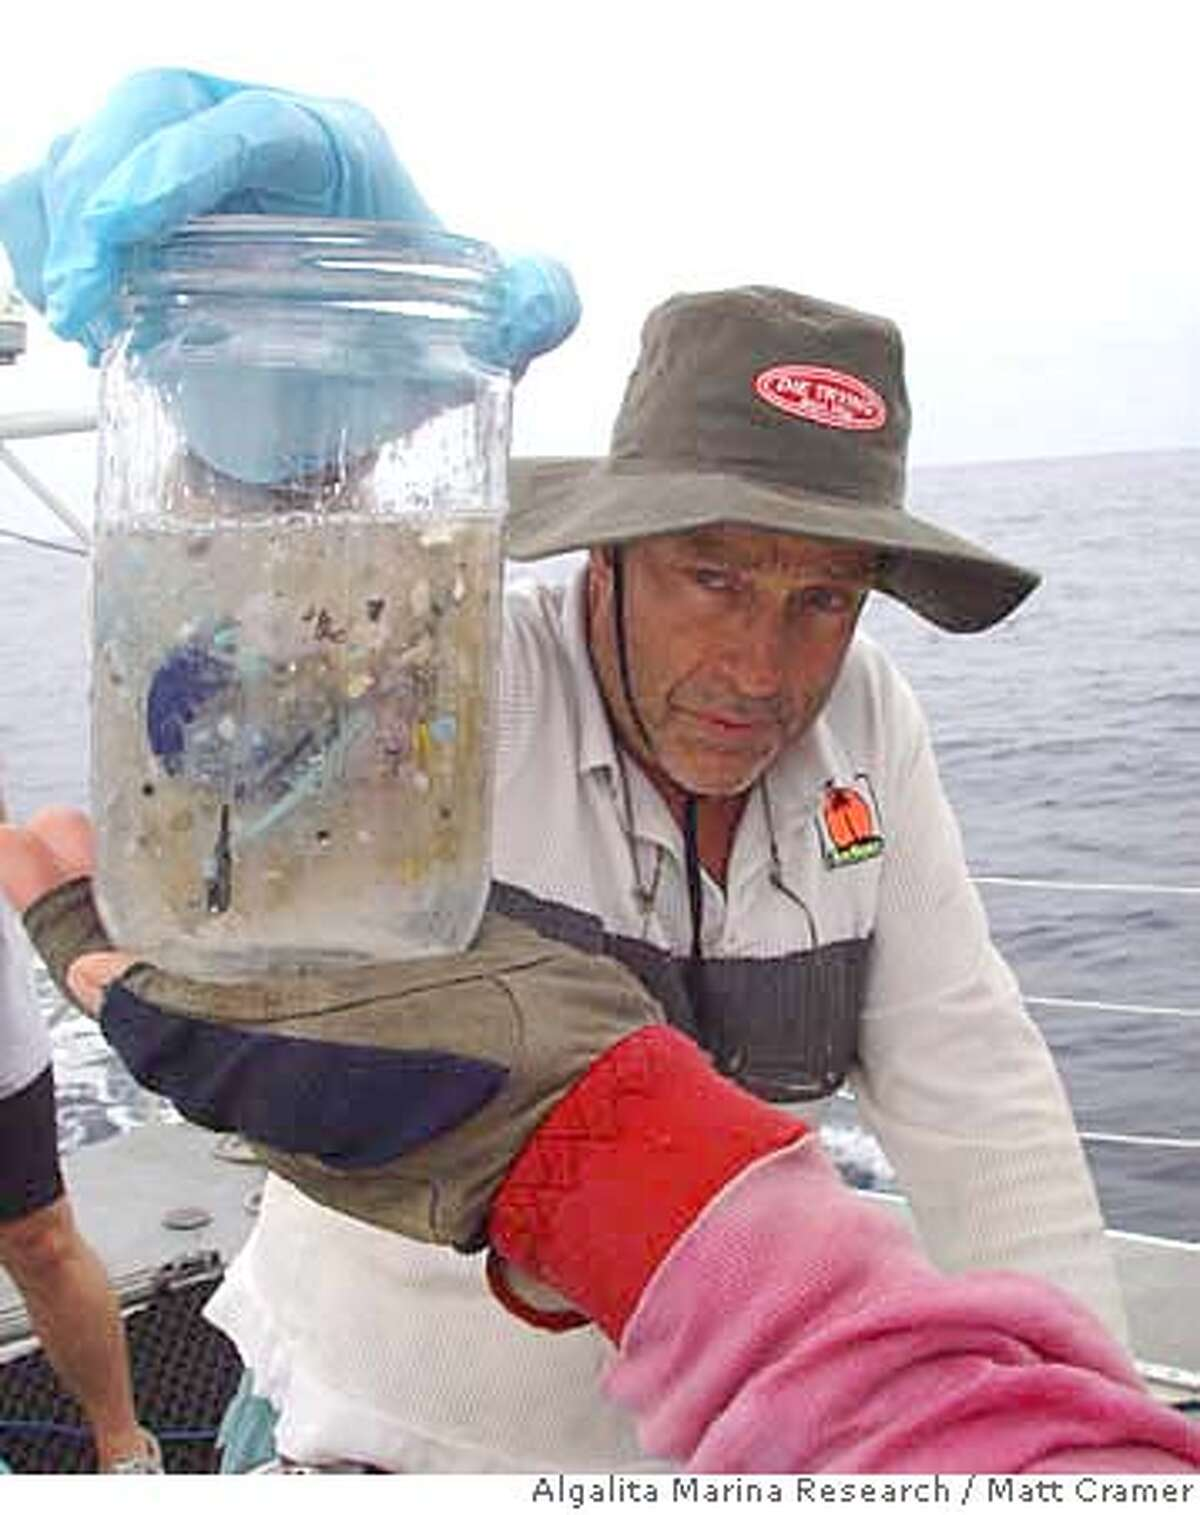 oceantrash30_ph.JPG This picture shows marine researcher Charles Moore on an expedition in the Pacific Ocean sometime between July through September of 2002. He holds a sample of ocean water from the North Central Pacific Gyre that contains small pieces of plastic. Moore, who works at the Long Beach-based Algalita Marina Research Foundation, has been studying the stew of plastic and marine debris floating in the ocean. Matt Cramer / Algalita Marina Research / Courtesy to The Chronicle MANDATORY CREDIT FOR PHOTOG AND SAN FRANCISCO CHRONICLE/NO SALES-MAGS OUT